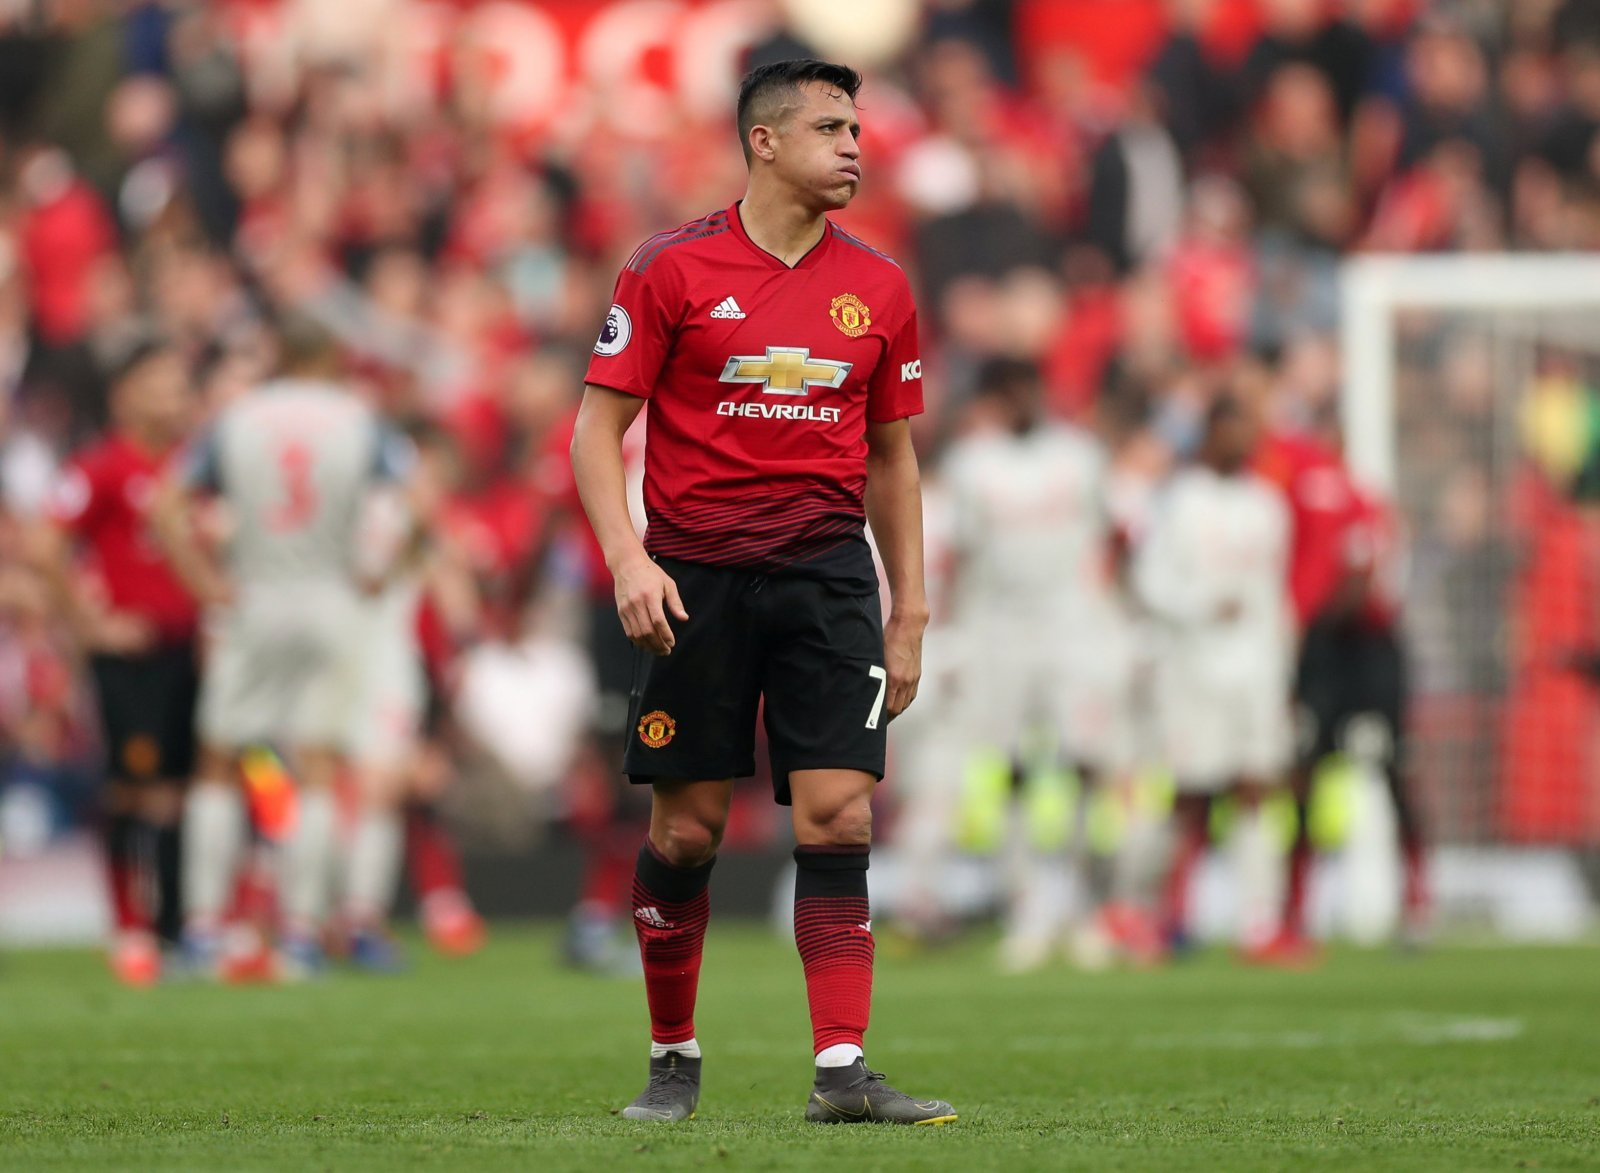 Manchester United: Alexis Sanchez seeking an exit is a promising sign